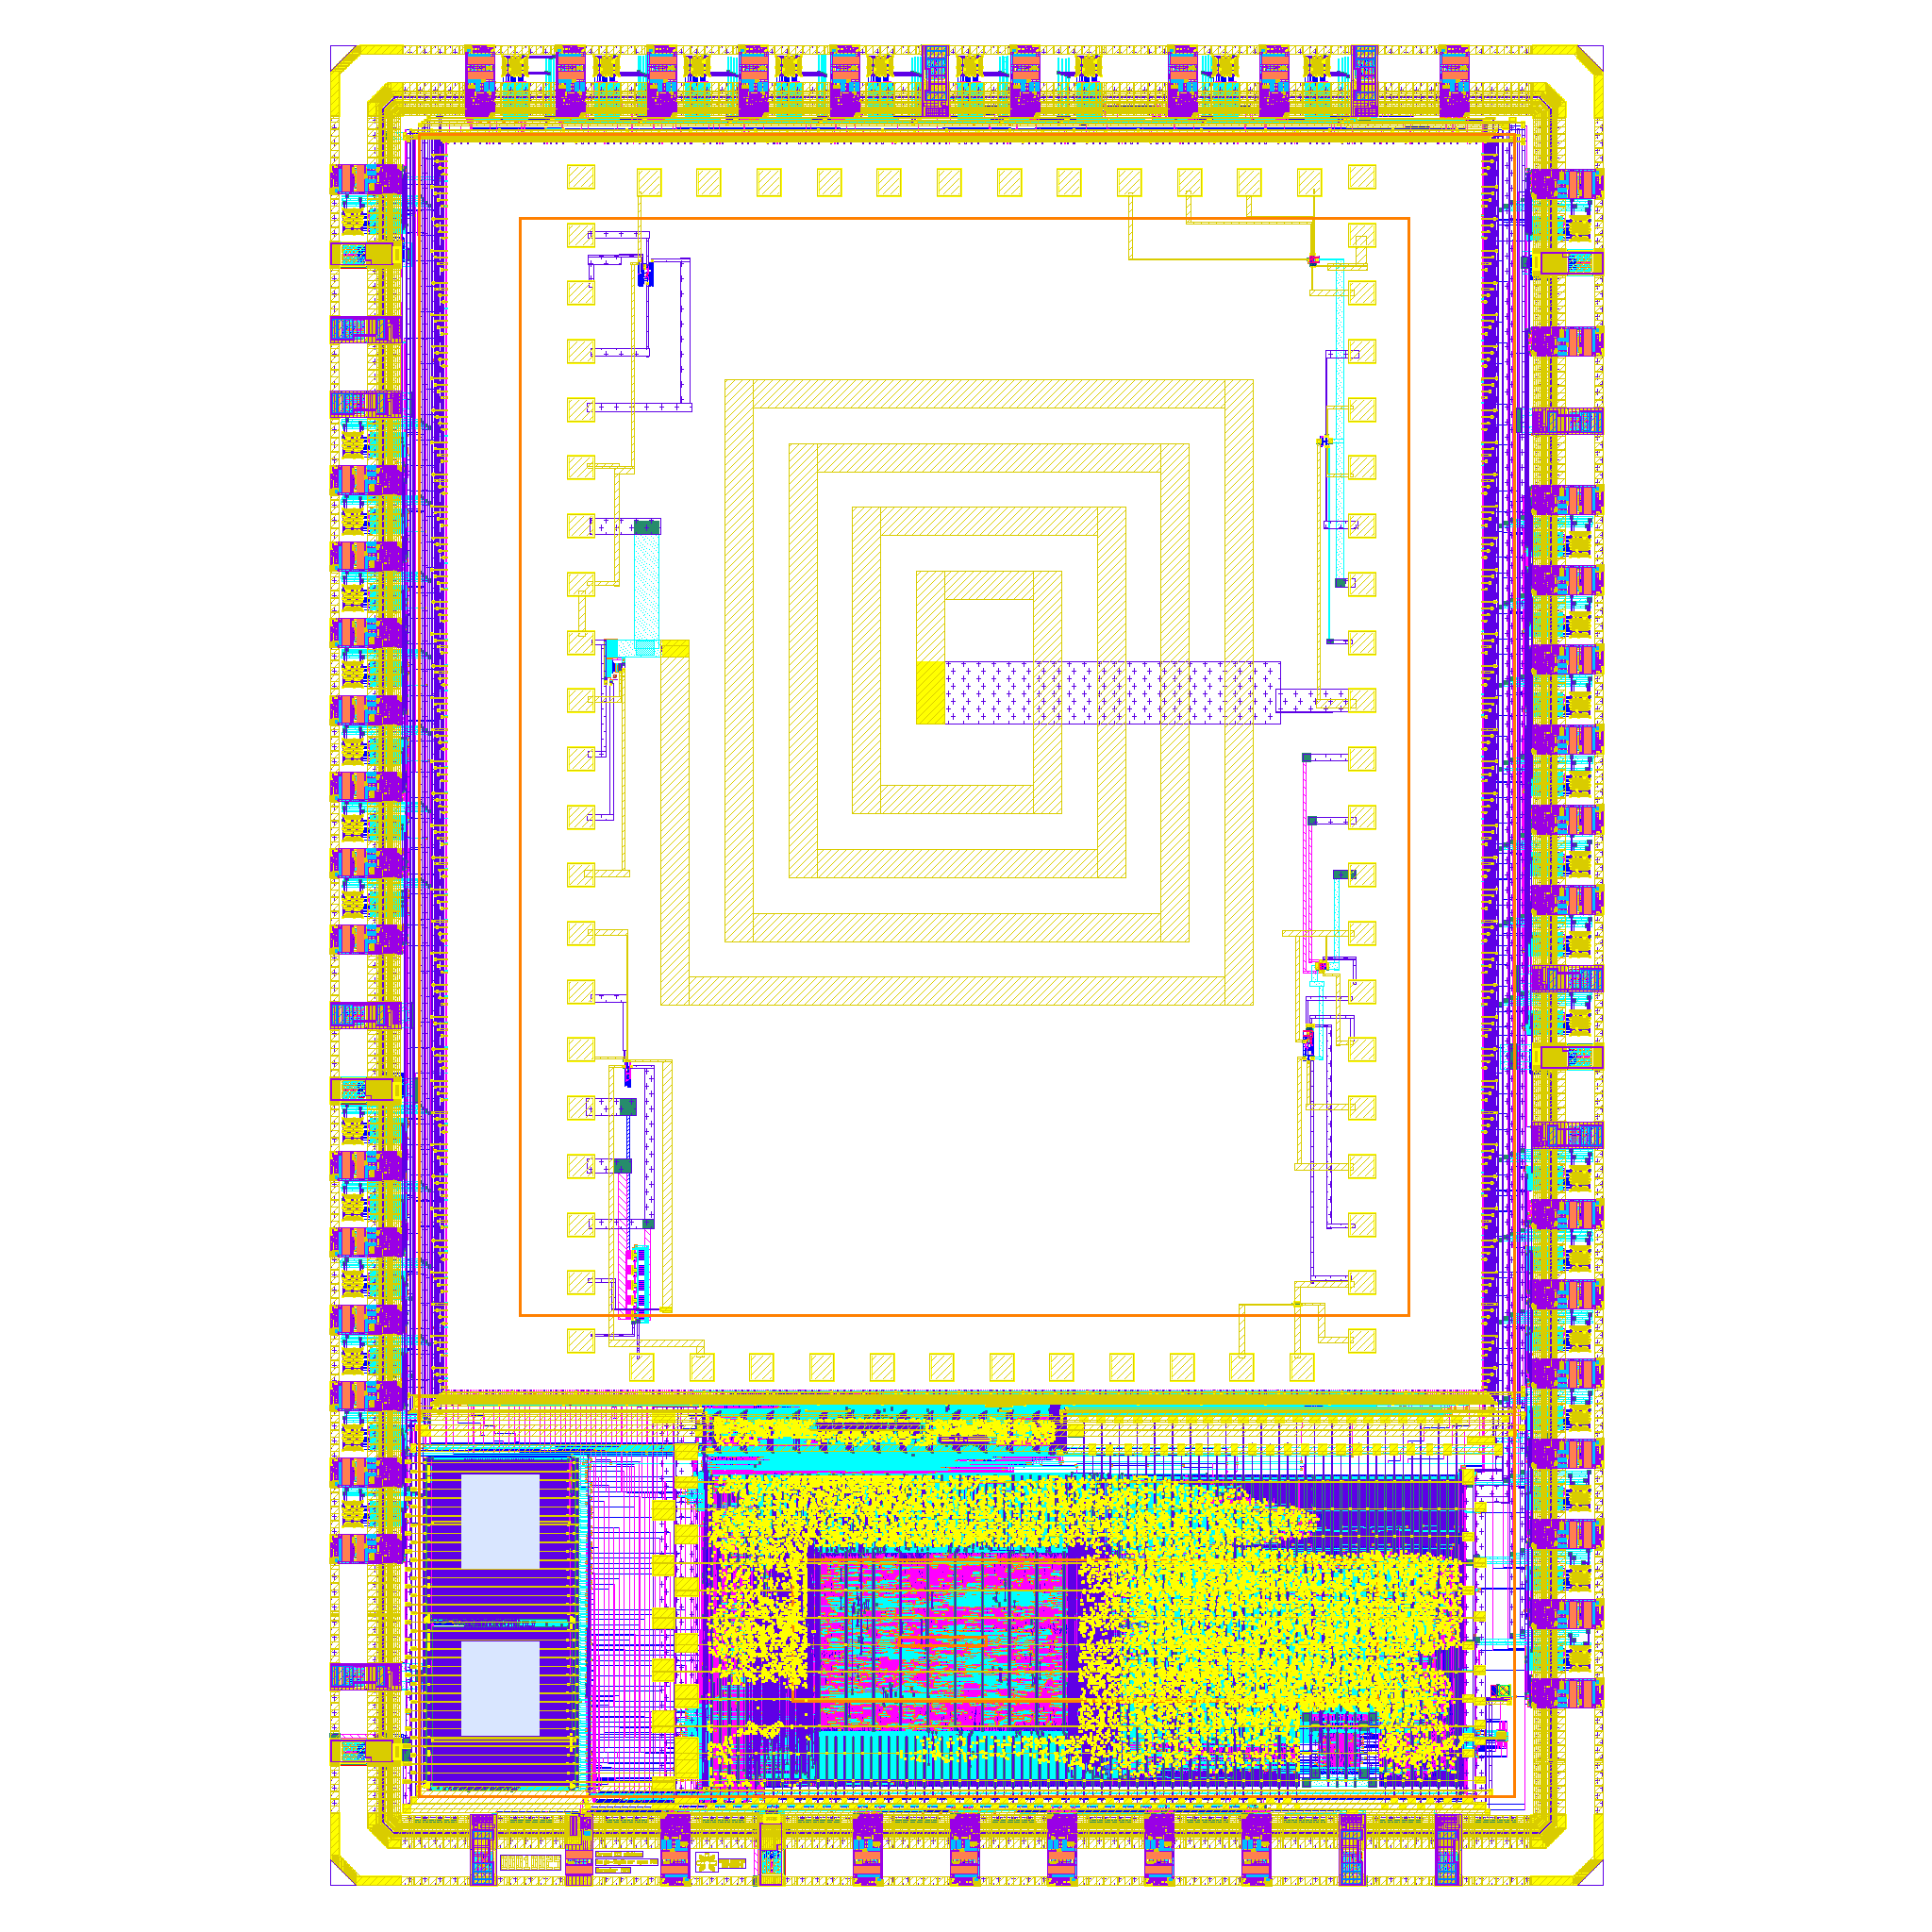 project layout image